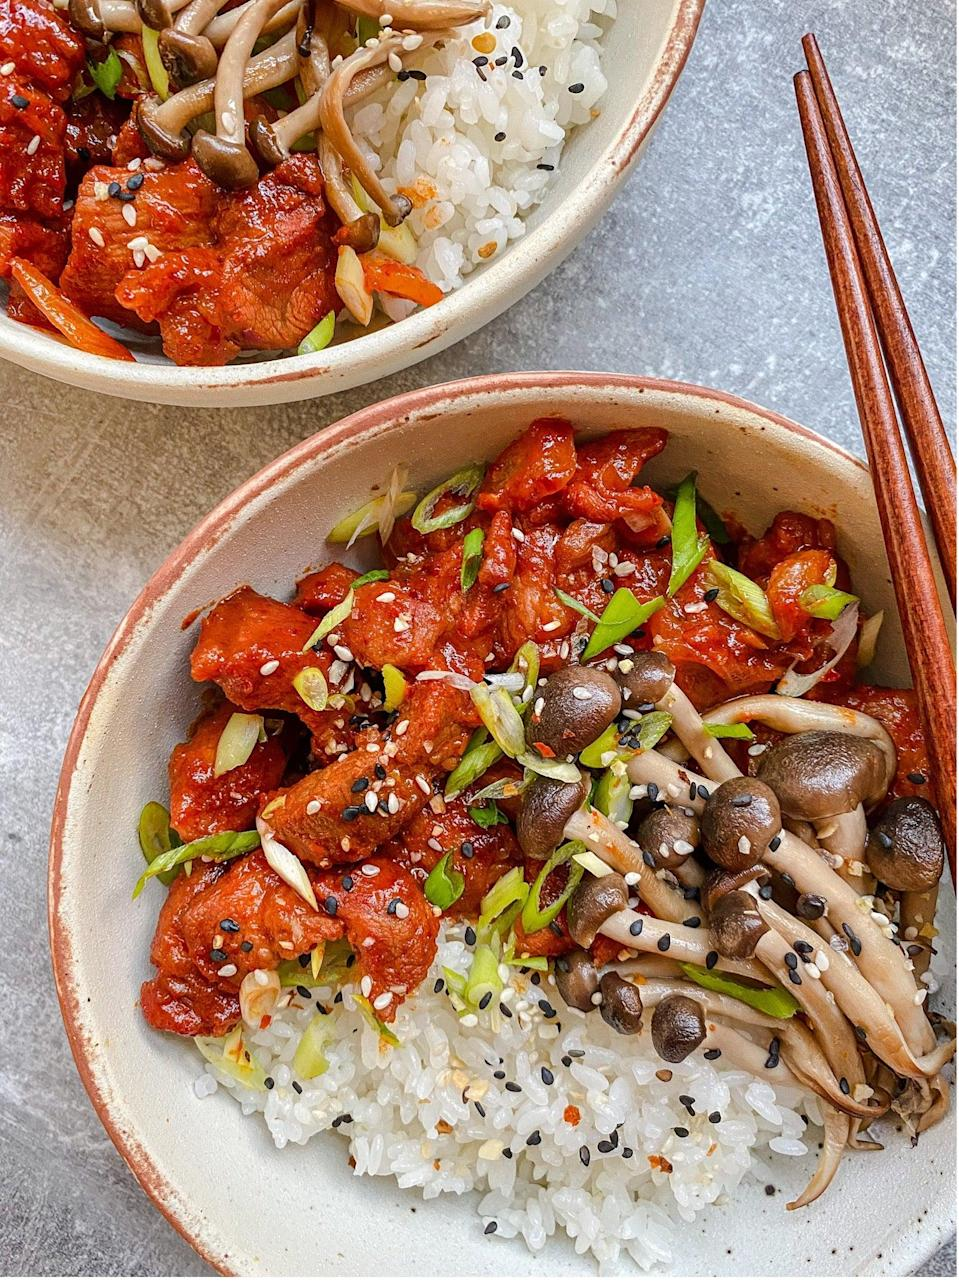 Give it time: The longer you marinate the meat, the more flavourful this dish will beVerna Gao